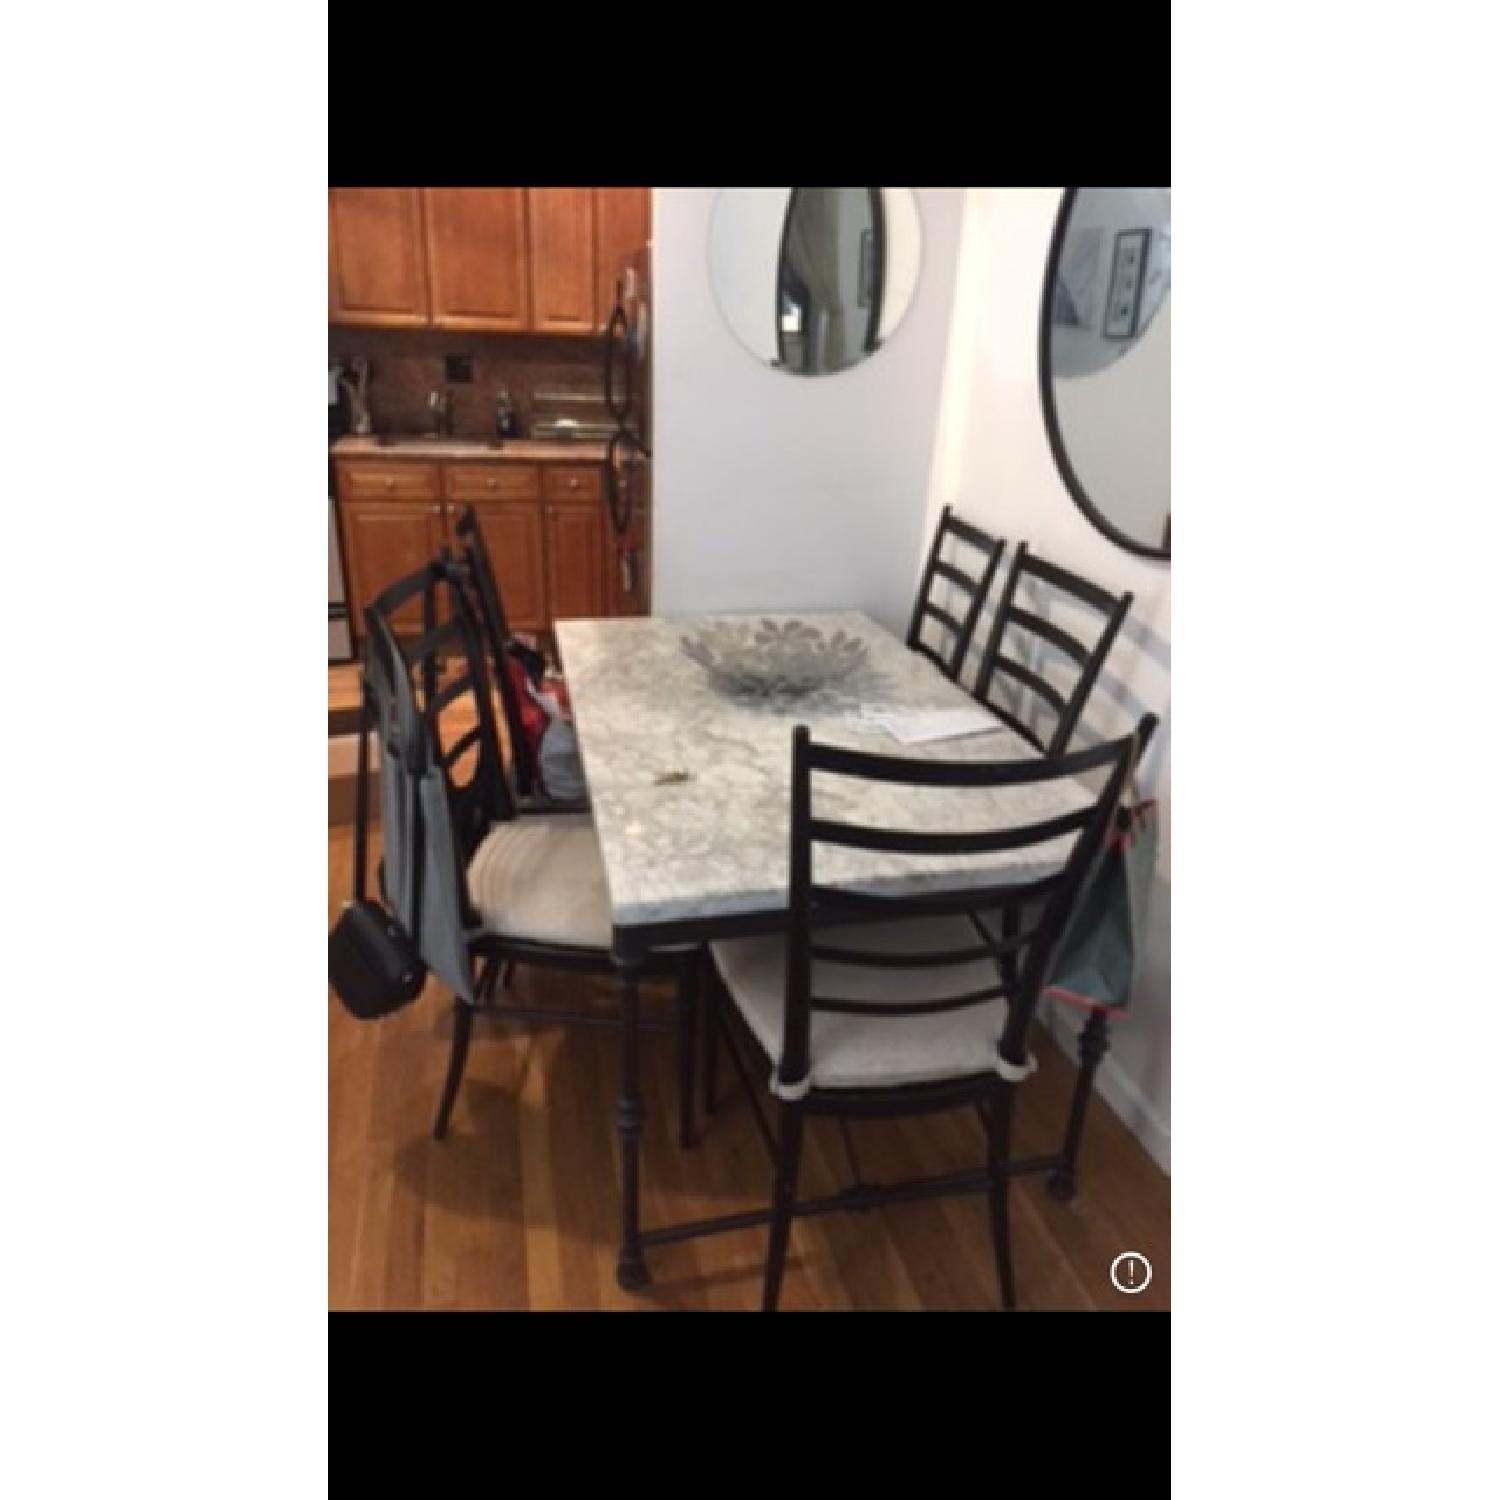 Crate Barrel French Kitchen Table W Marble Top AptDeco - French kitchen table with marble top